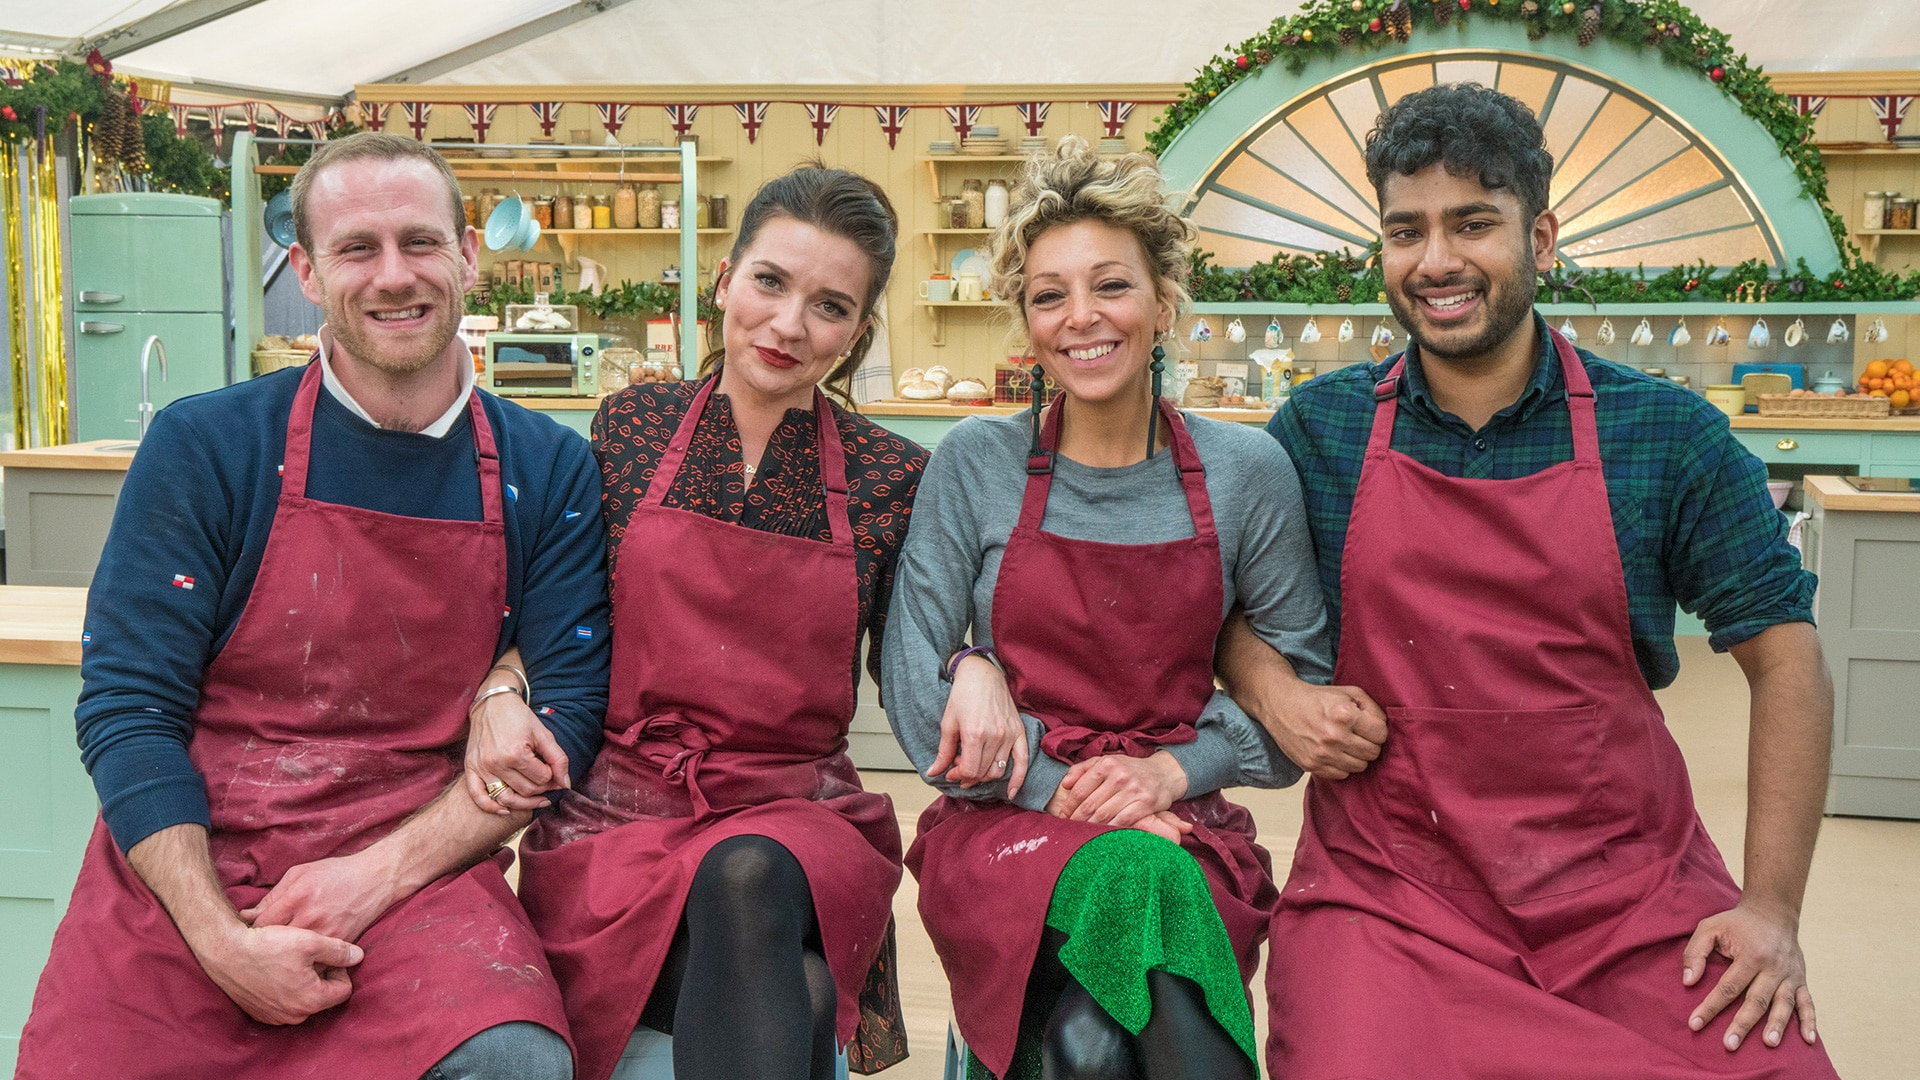 Great British Bake Off 2020 Christmas The Great British Bake Off: Festive Specials   All 4